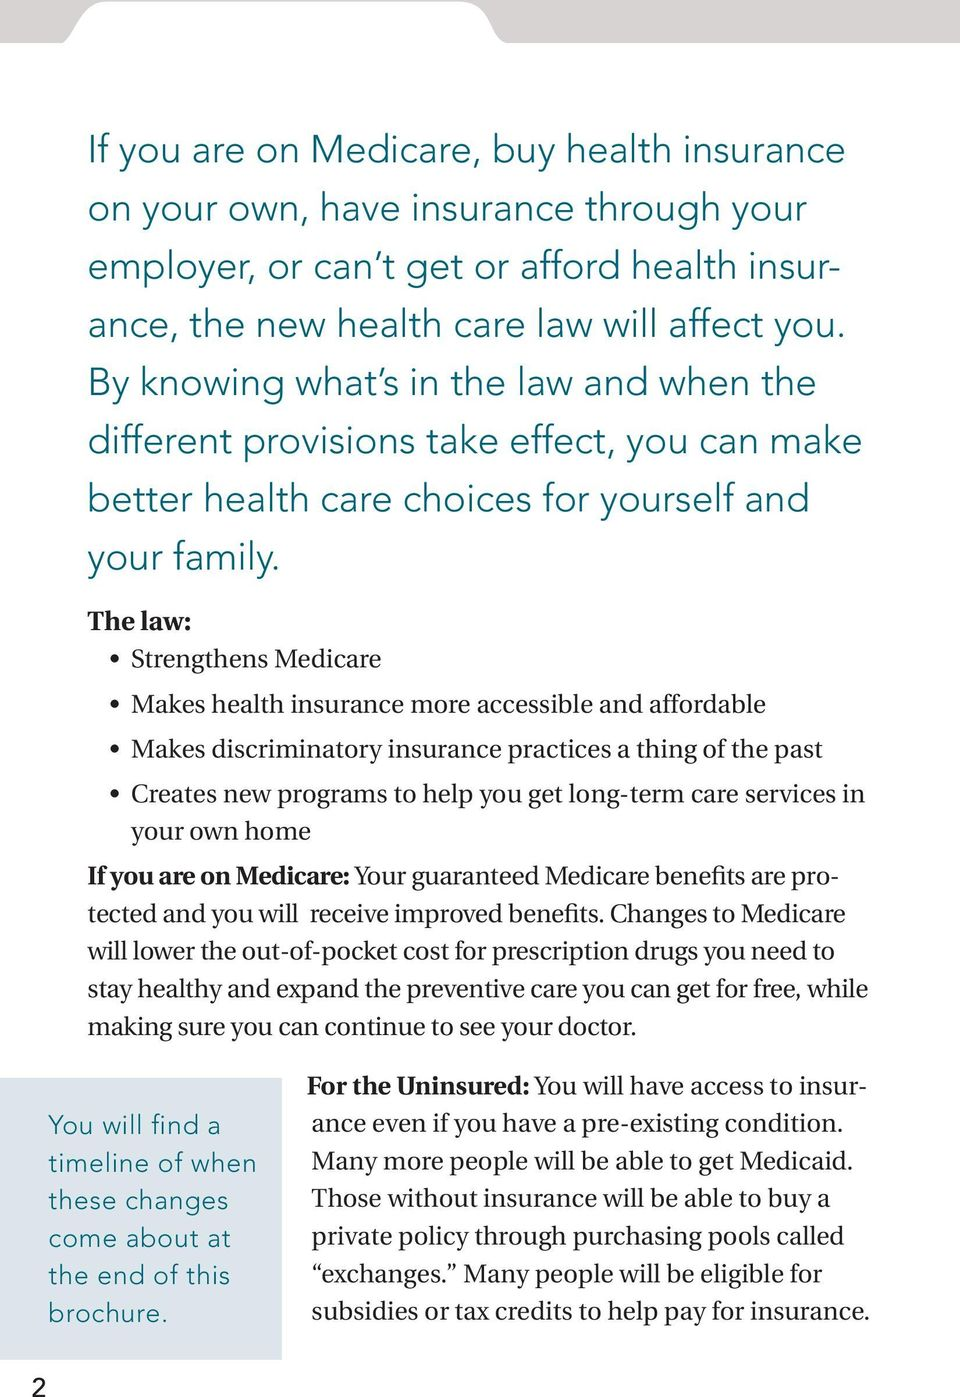 The law: Strengthens Medicare Makes health insurance more accessible and affordable Makes discriminatory insurance practices a thing of the past Creates new programs to help you get long-term care